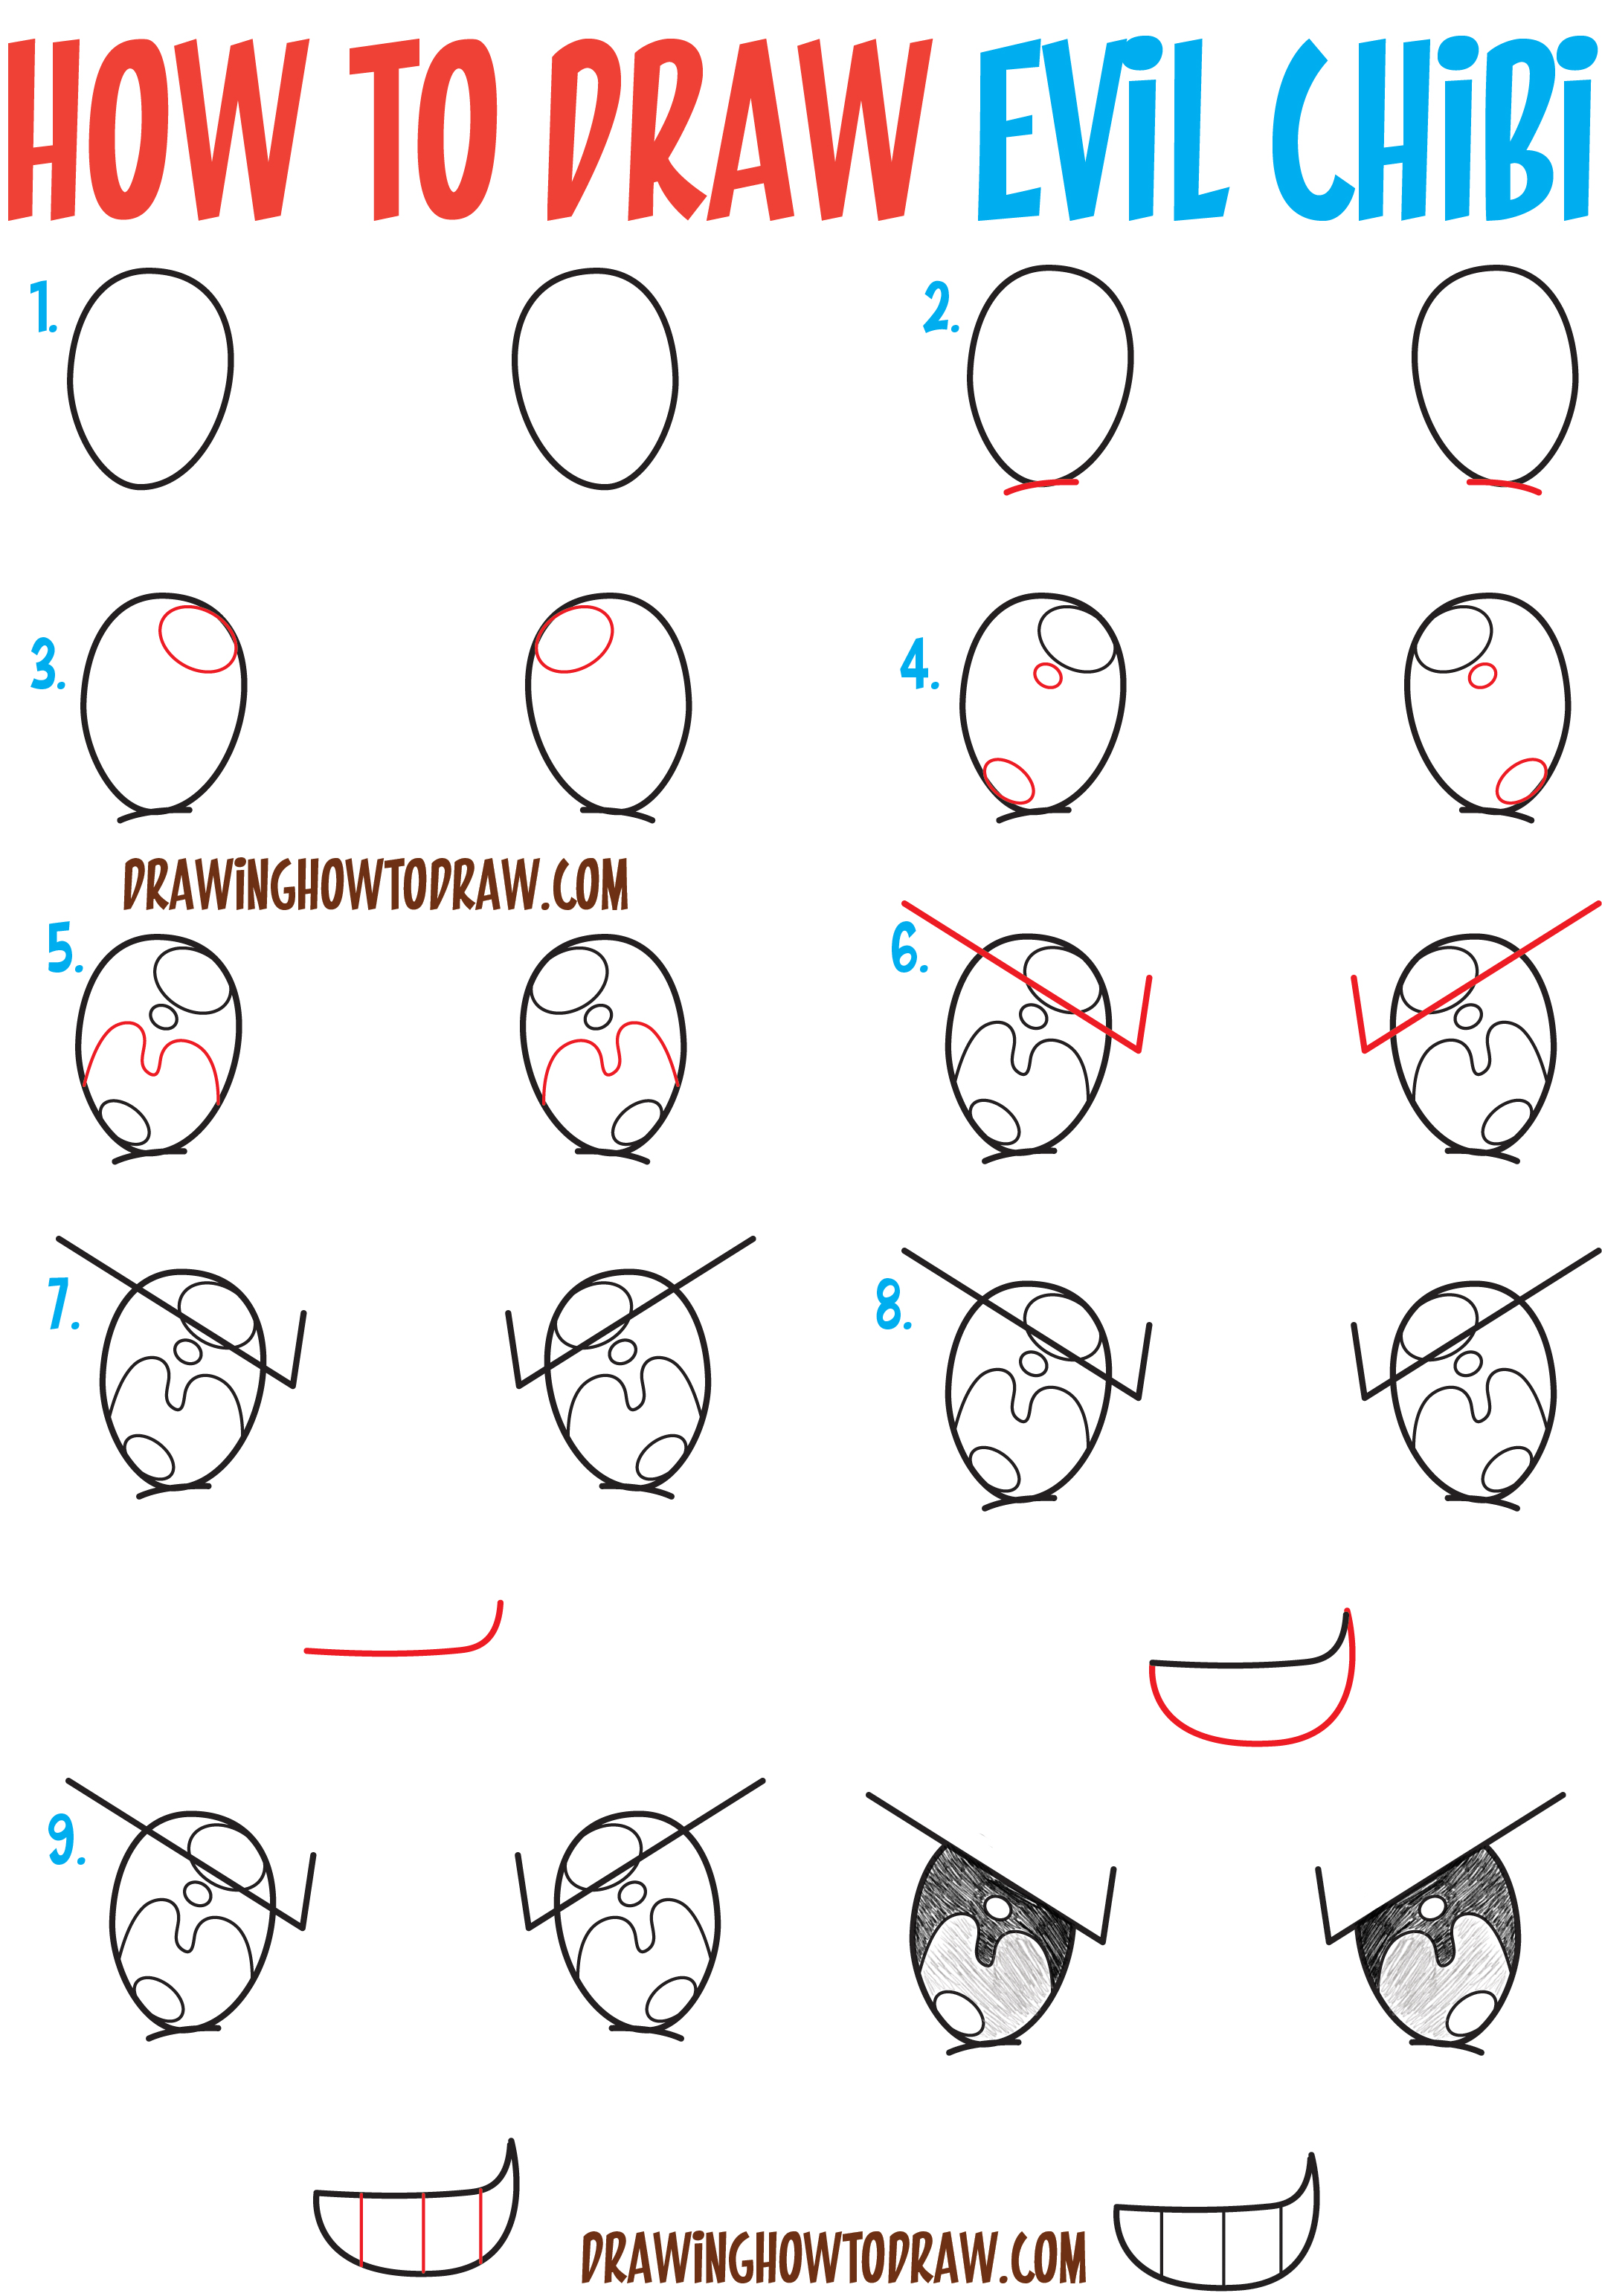 How To Draw Sneaky Devious Evil Chibi Expressions